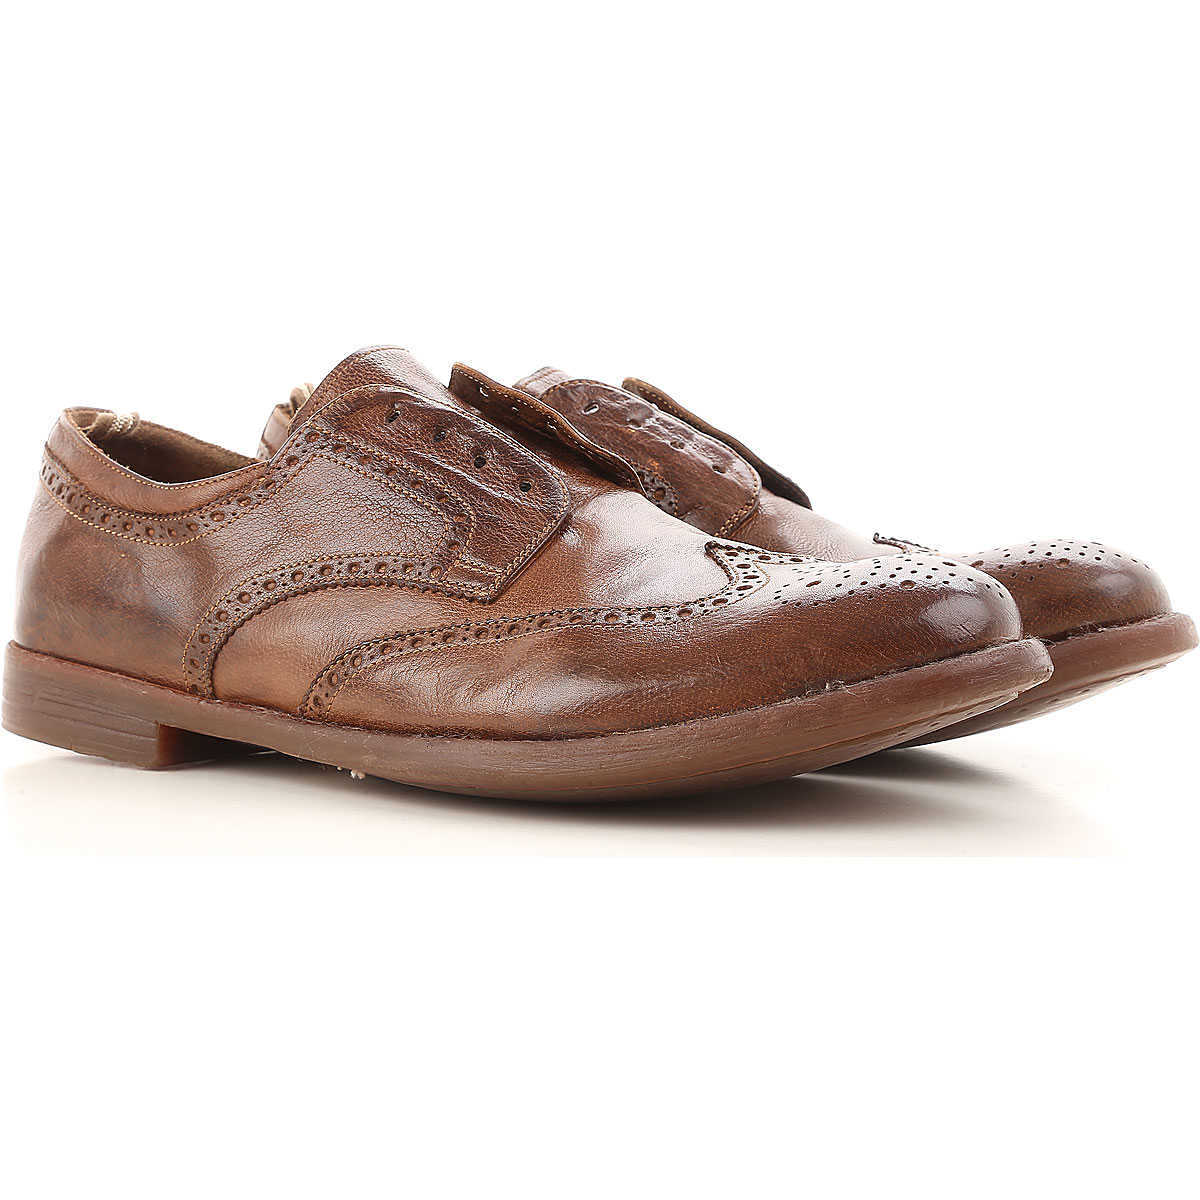 Officine Creative Lace Up Shoes for Men Oxfords 6.5 8 9.5 Derbies and Brogues On Sale UK - GOOFASH